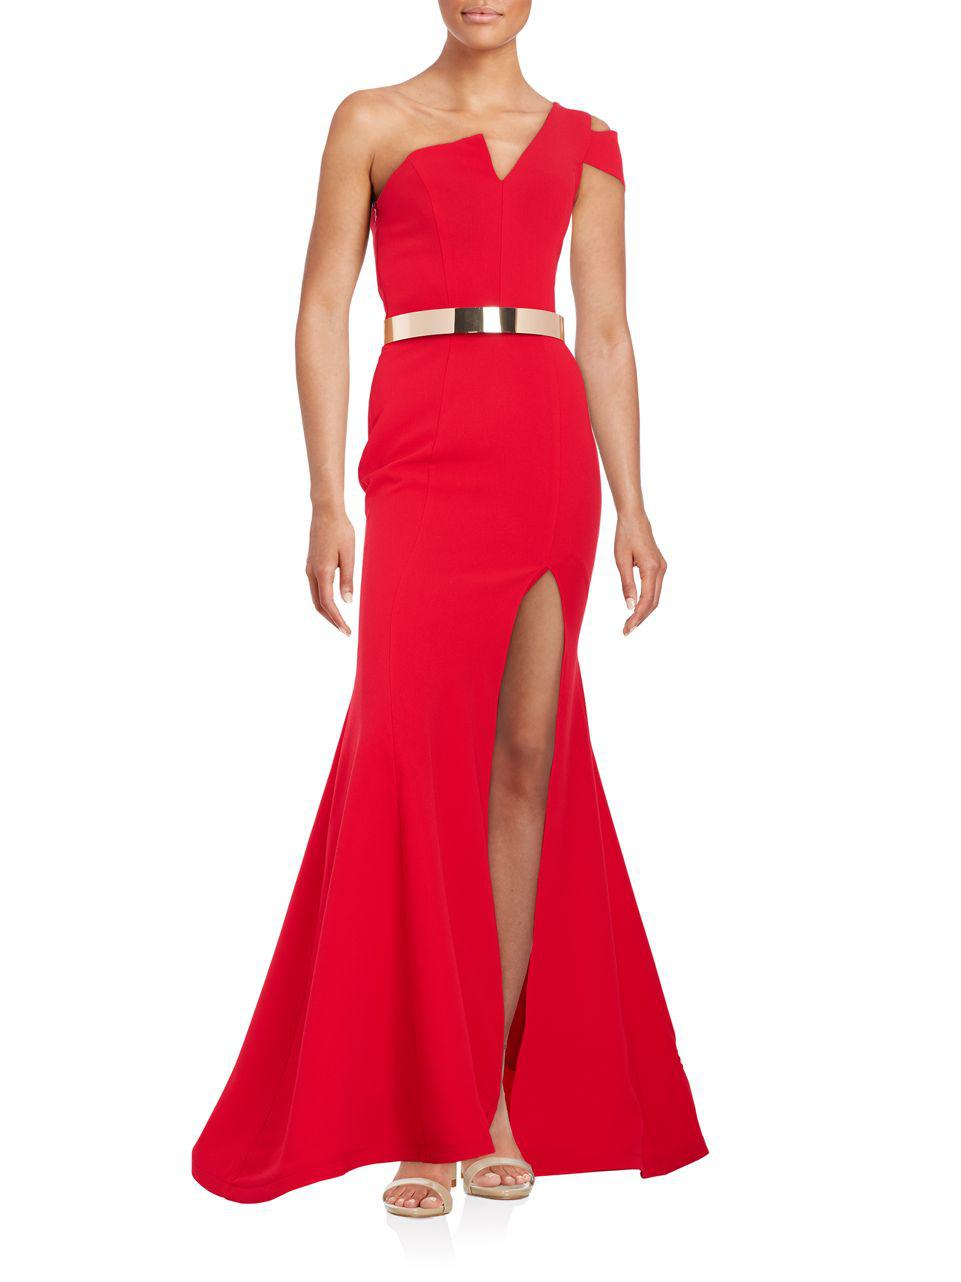 a31f2041e788 Nicole Bakti Textured One-shoulder Trumpet Gown in Red - Lyst